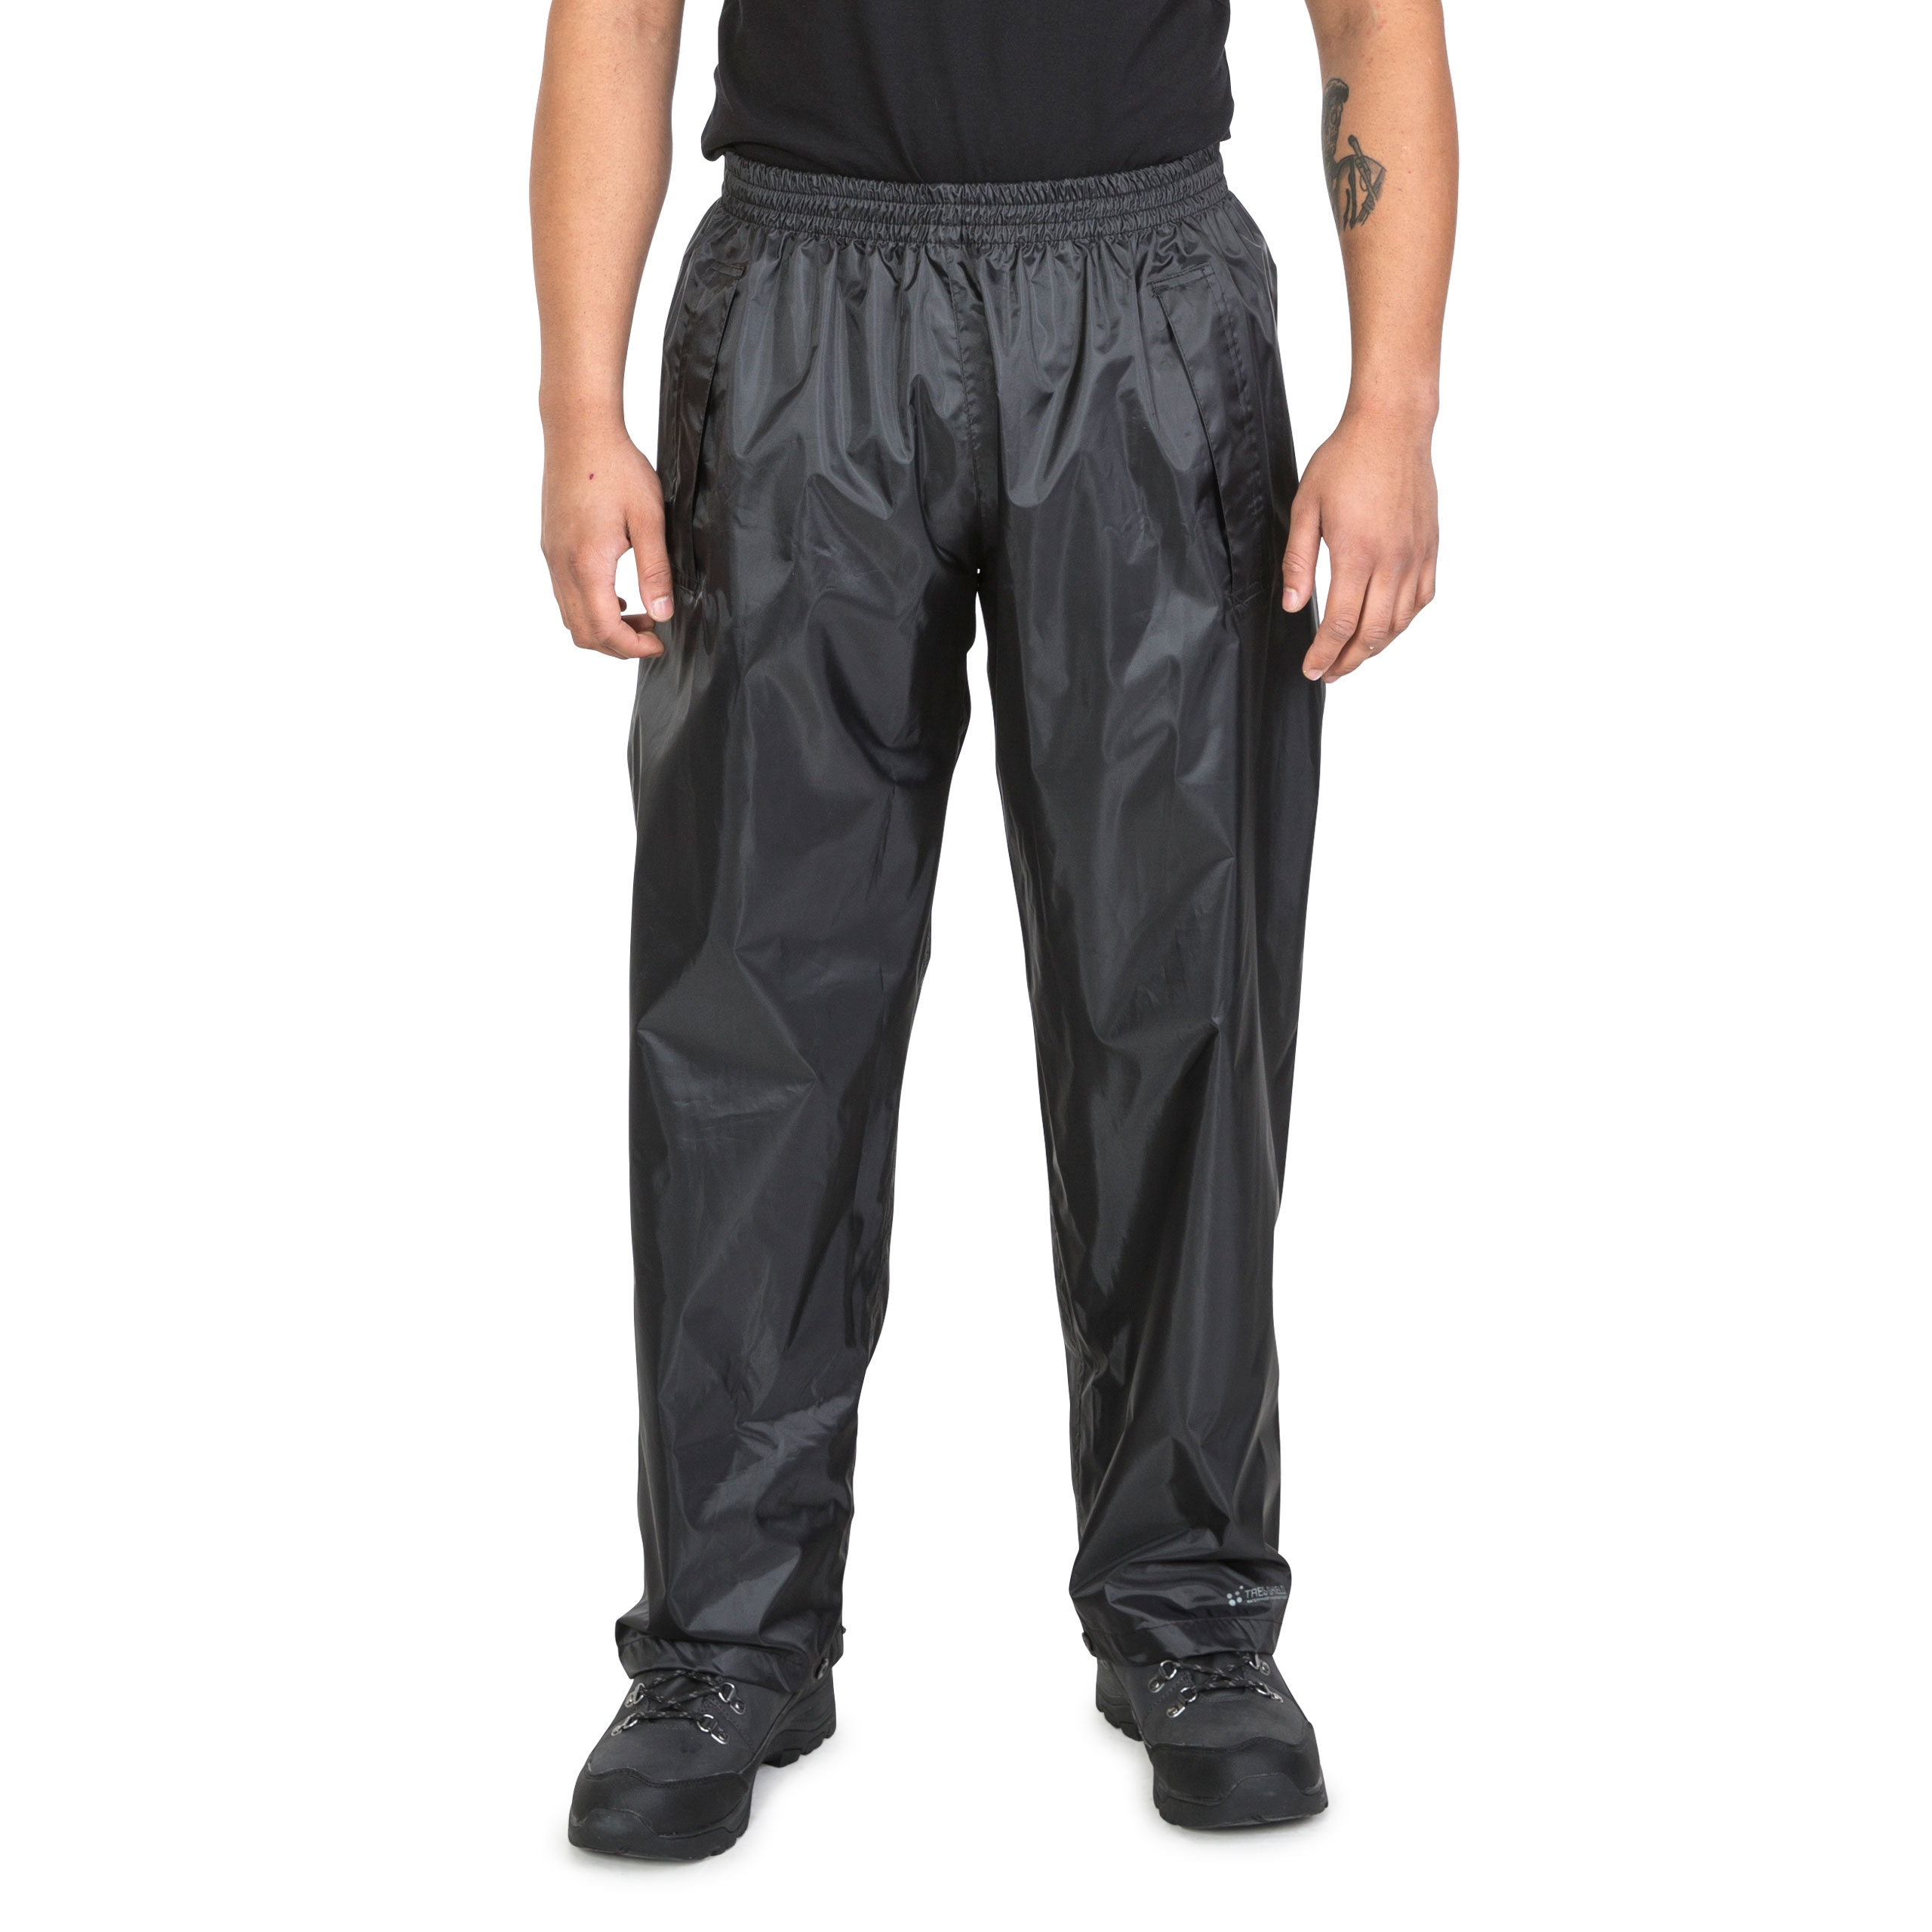 Trespass-Mens-Waterproof-Trousers-Walking-Hiking-Windproof-Carbondale thumbnail 14